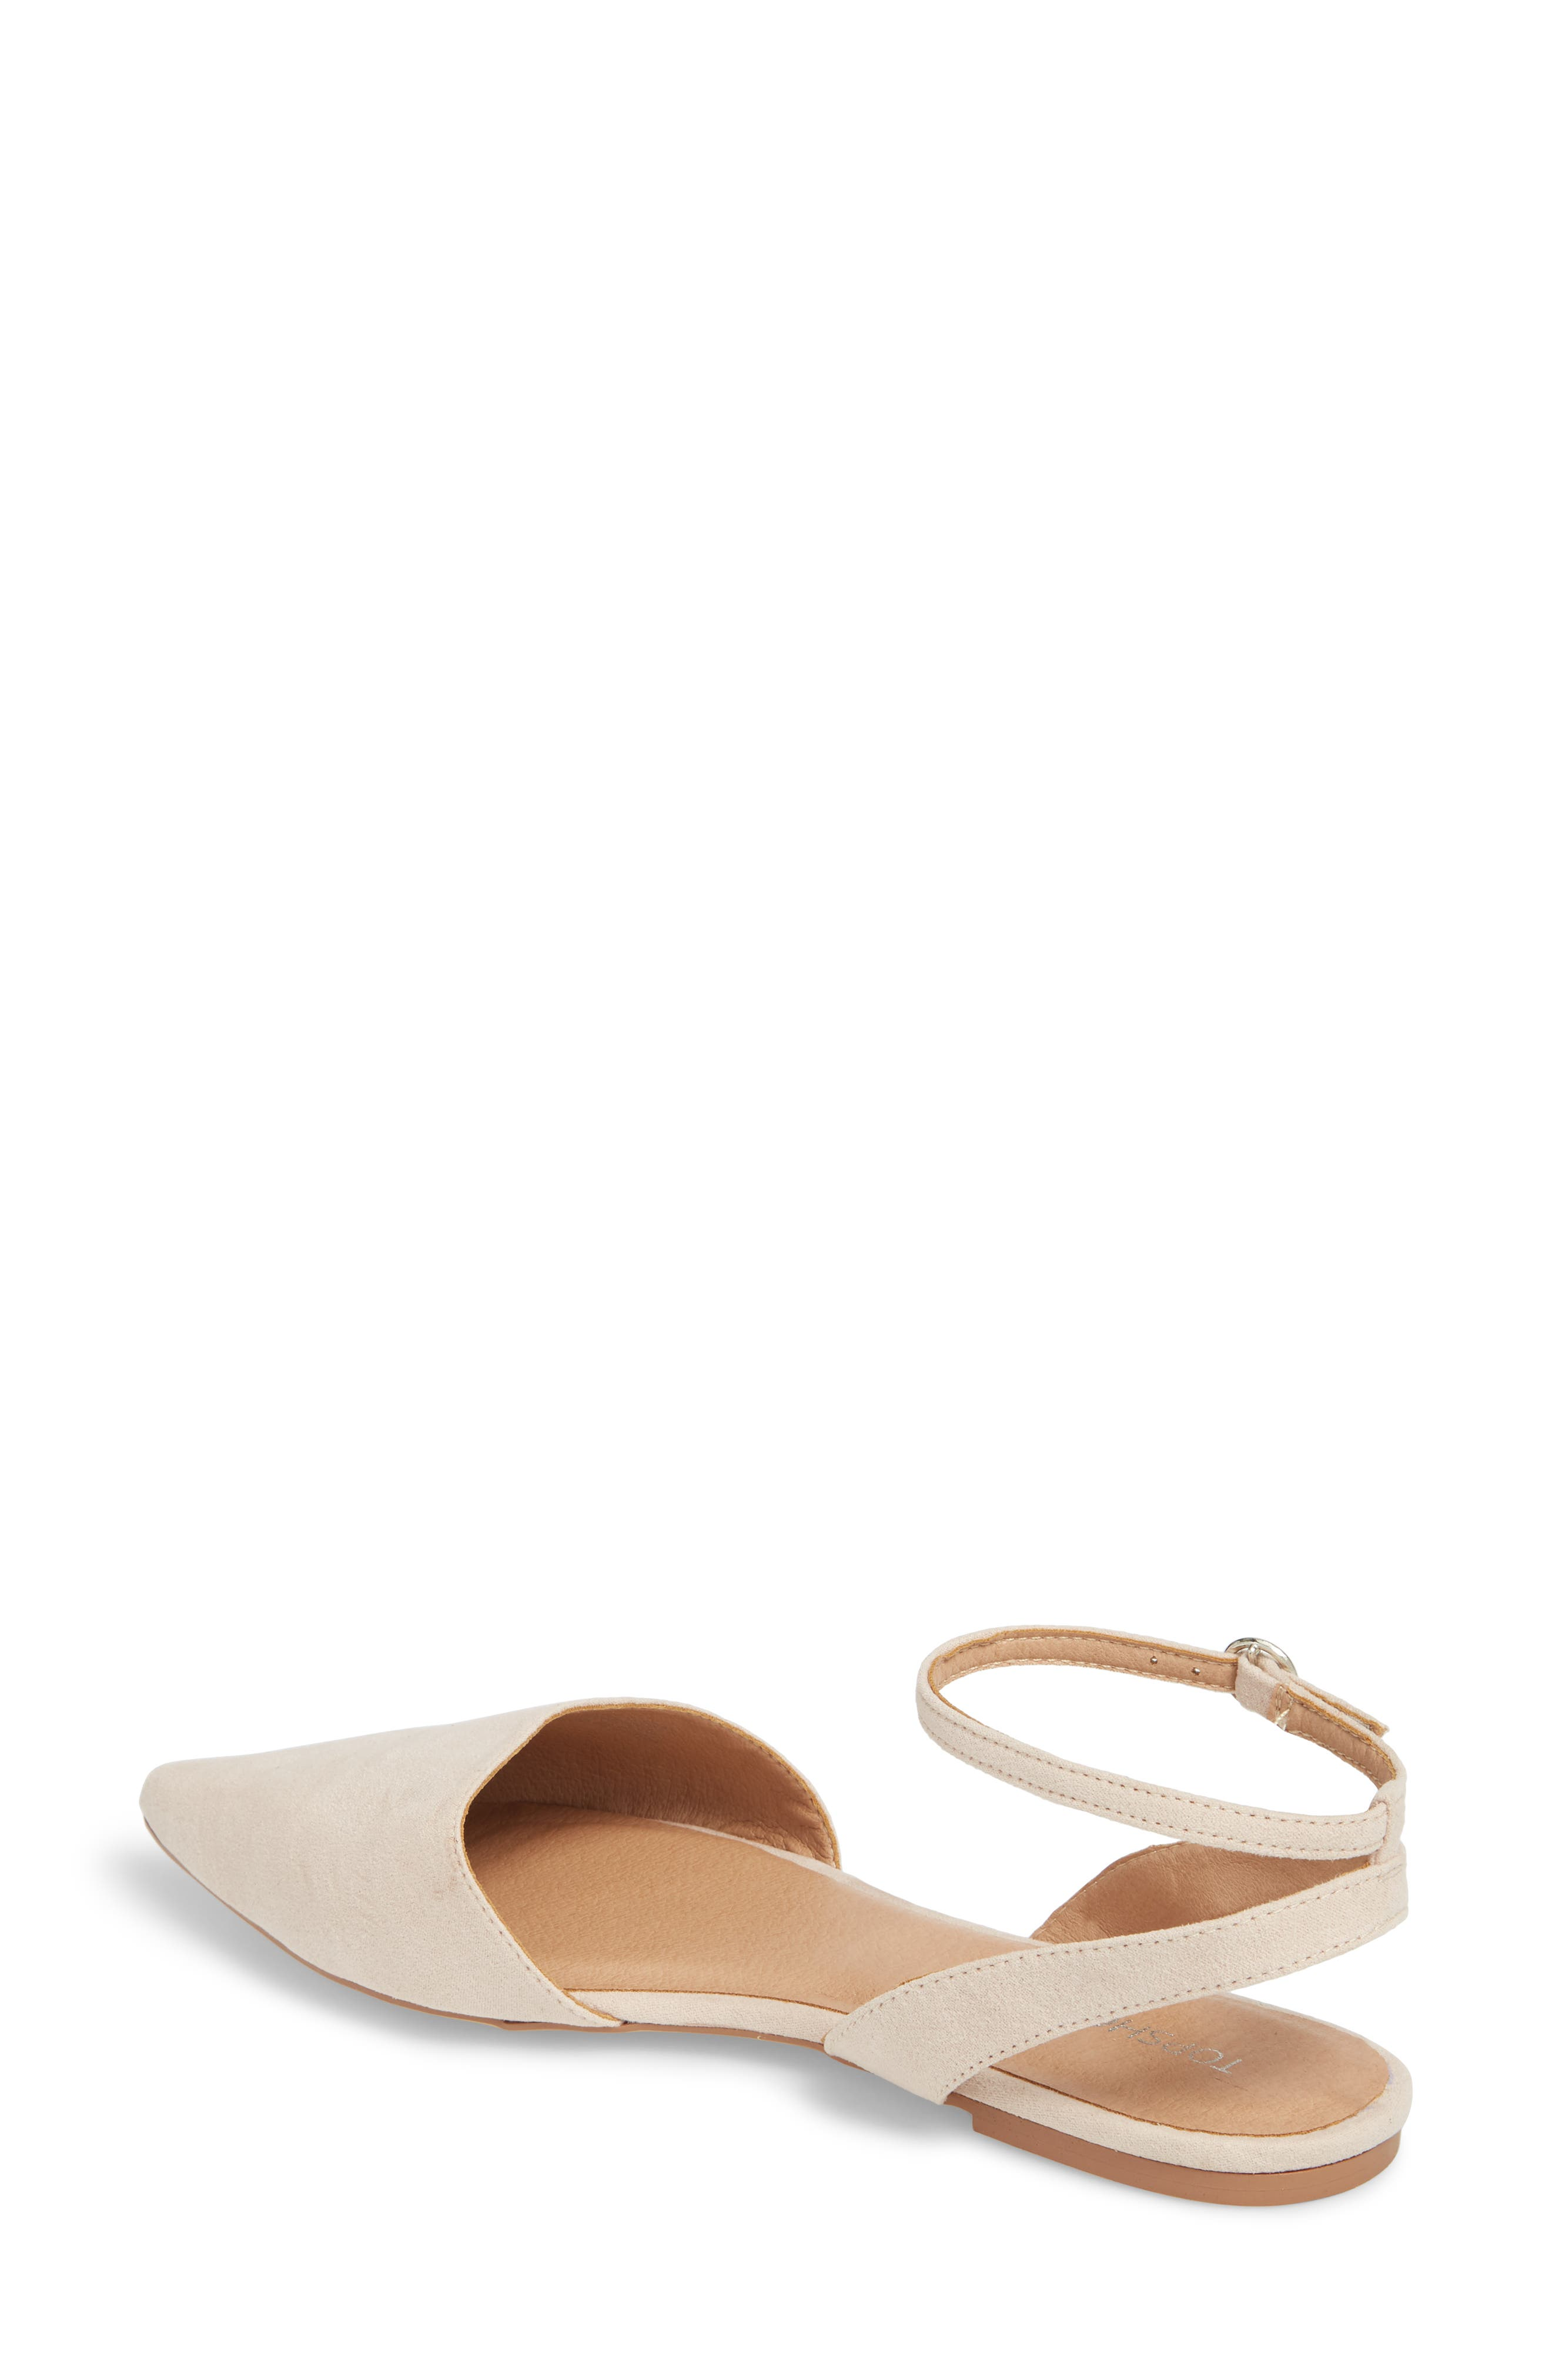 Anne Pointy Toe Flat,                             Alternate thumbnail 2, color,                             NUDE